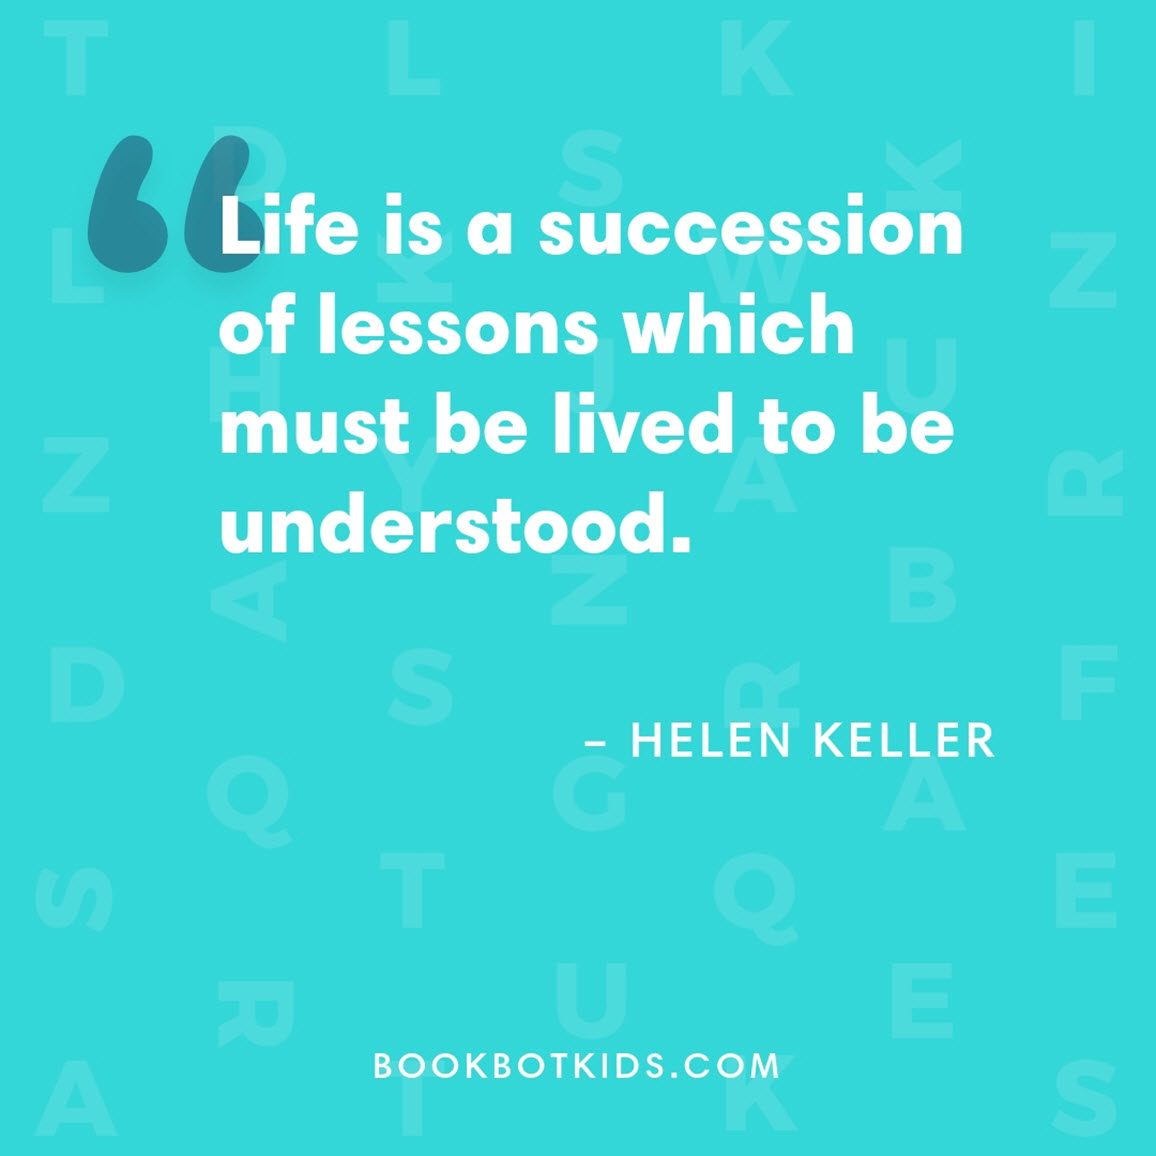 Life is a succession of lessons which must be lived to be understood. – Helen Keller